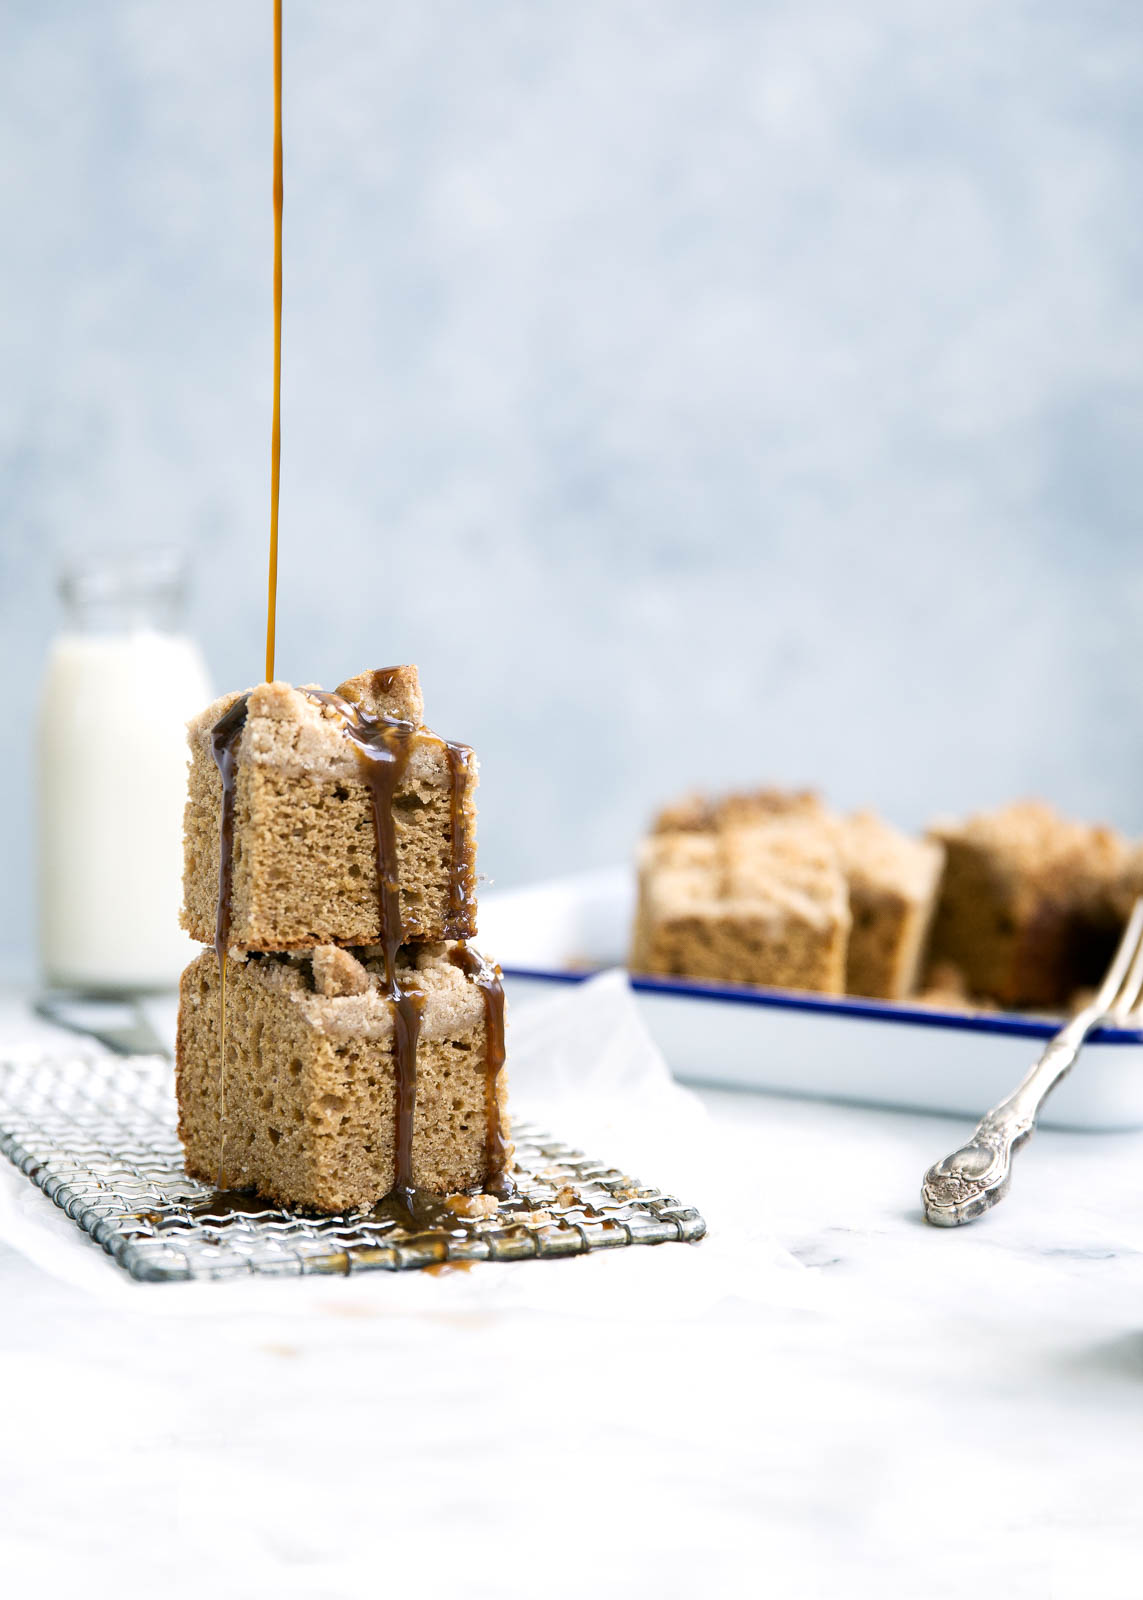 Icelandic Skyr Spice Cake with Toffee Sauce - Broma Bakery